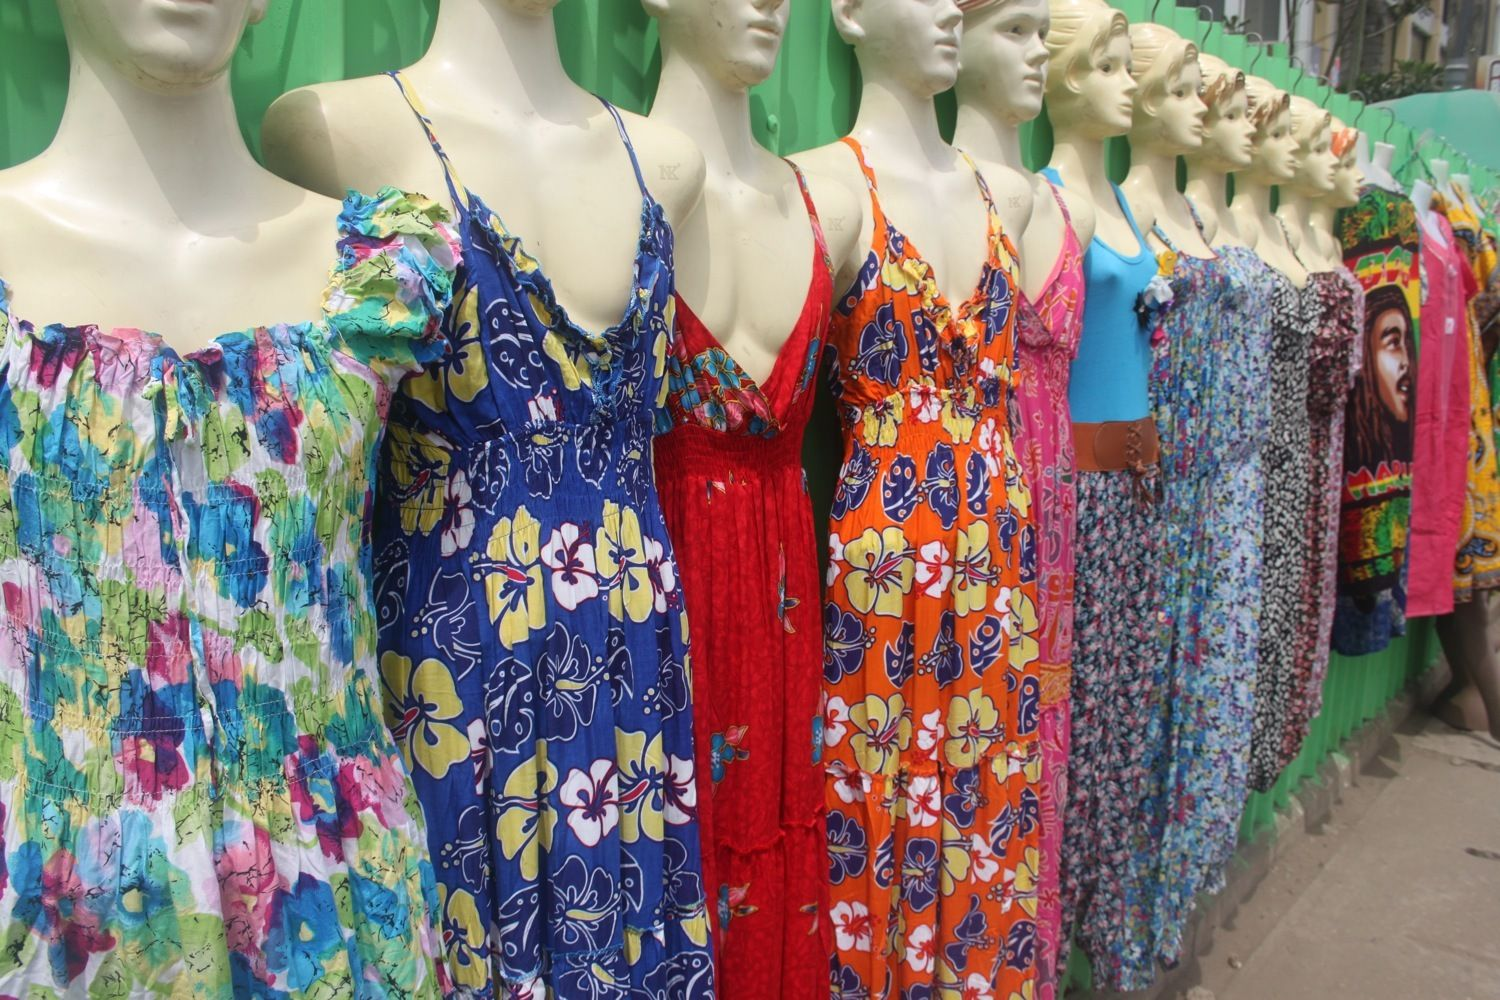 125 Things To Do In Accra And Ghana Shopping Stuff To Do Accra Ghana